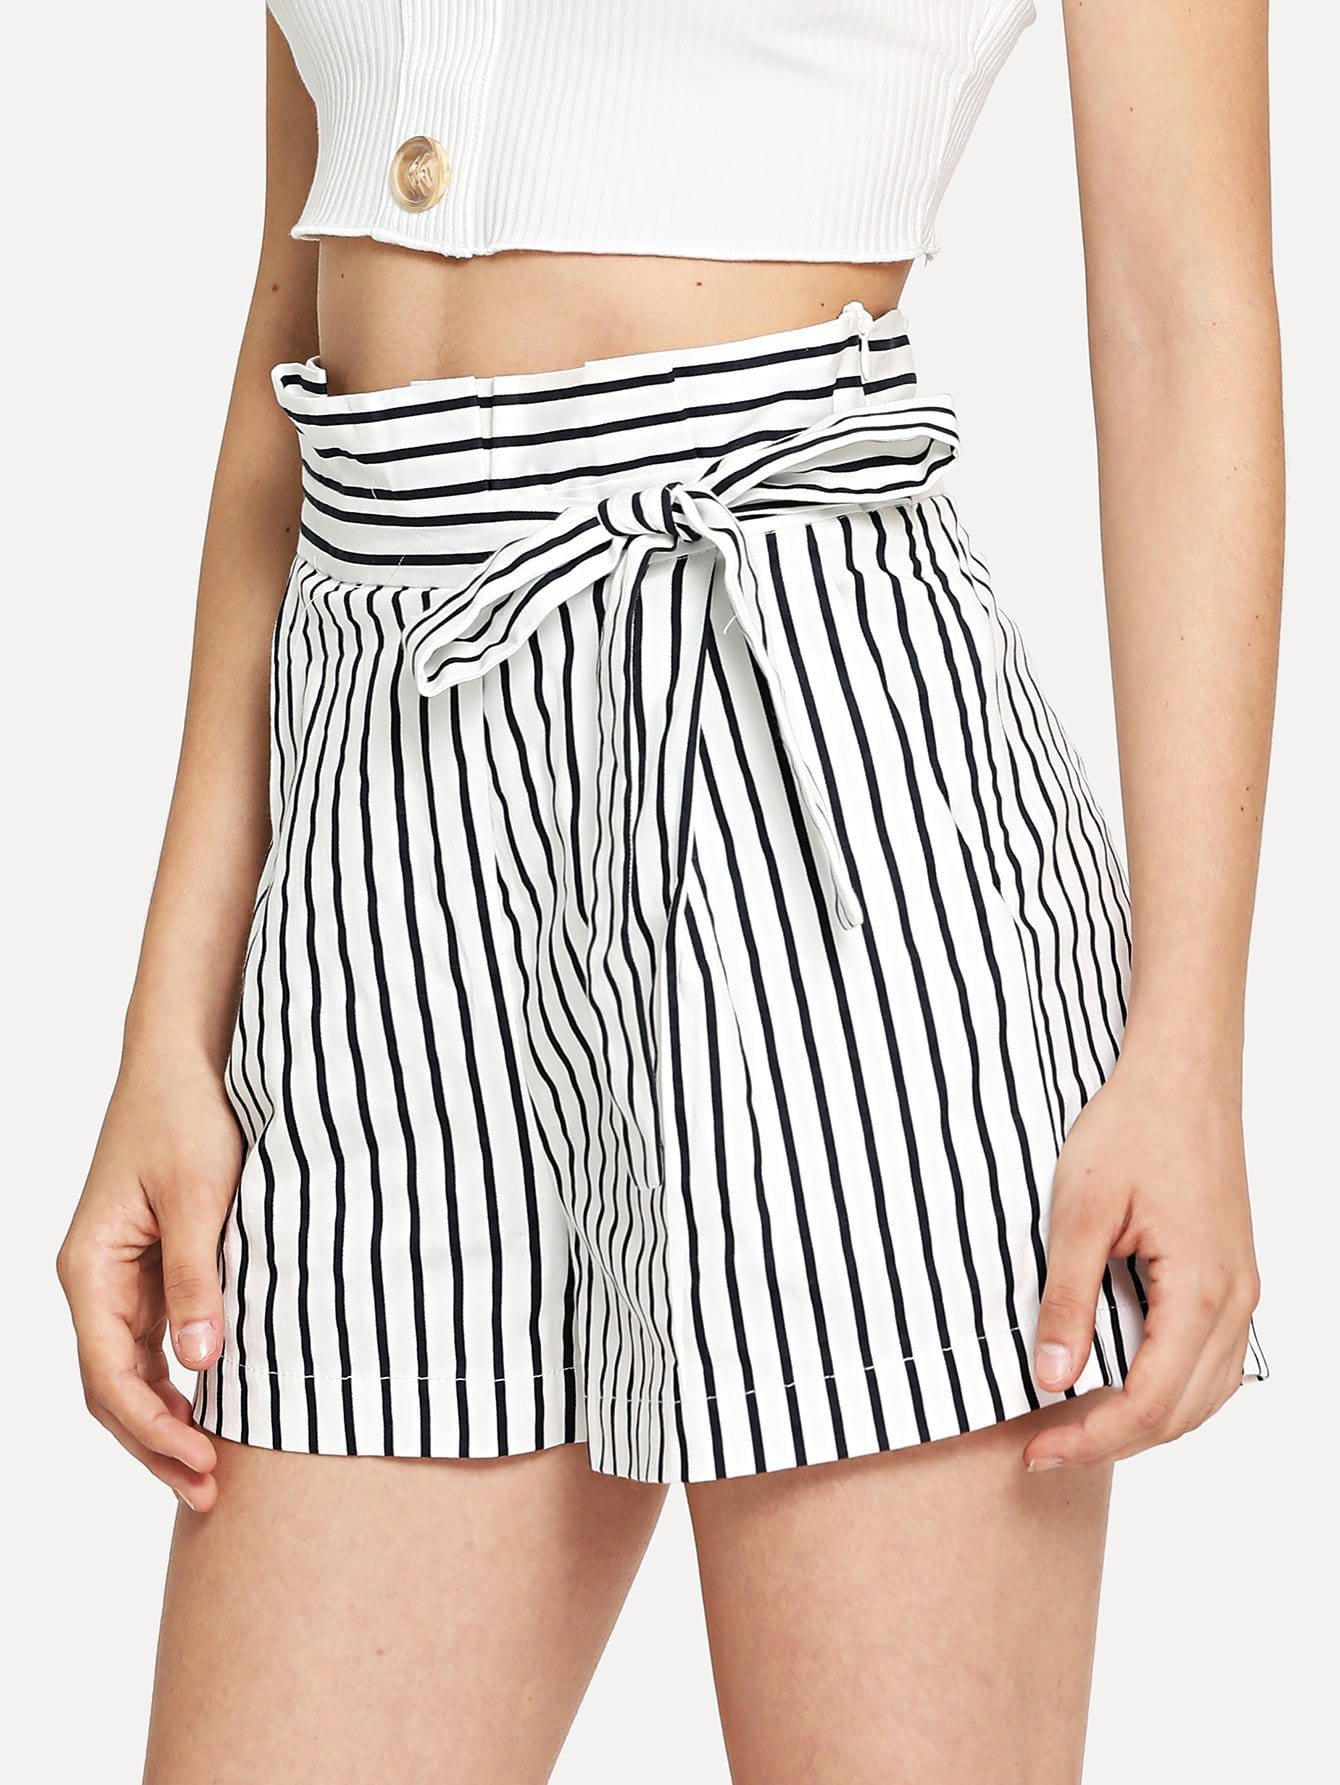 Knot Side Striped Shorts striped tape side legging shorts